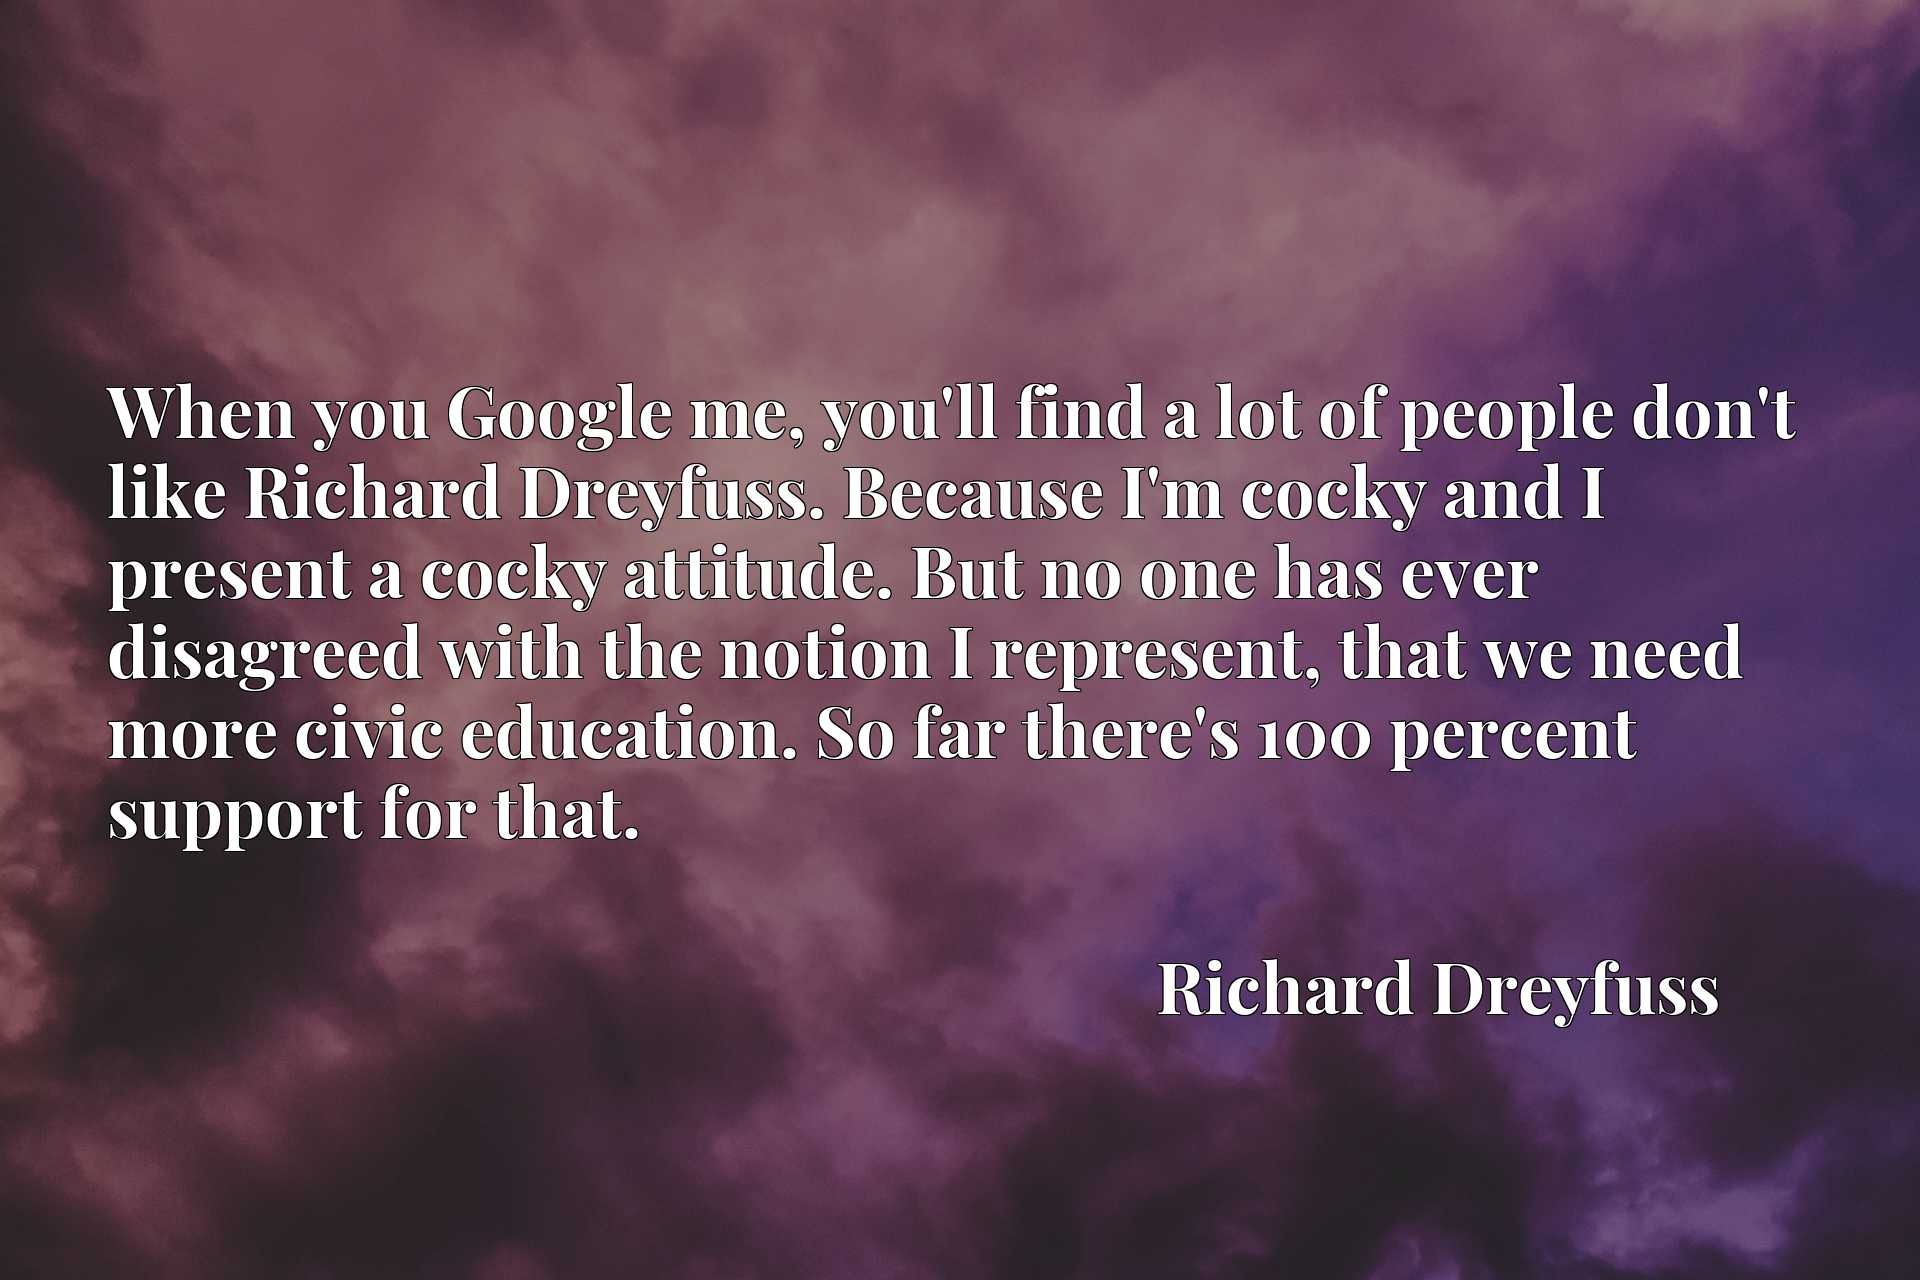 When you Google me, you'll find a lot of people don't like Richard Dreyfuss. Because I'm cocky and I present a cocky attitude. But no one has ever disagreed with the notion I represent, that we need more civic education. So far there's 100 percent support for that.